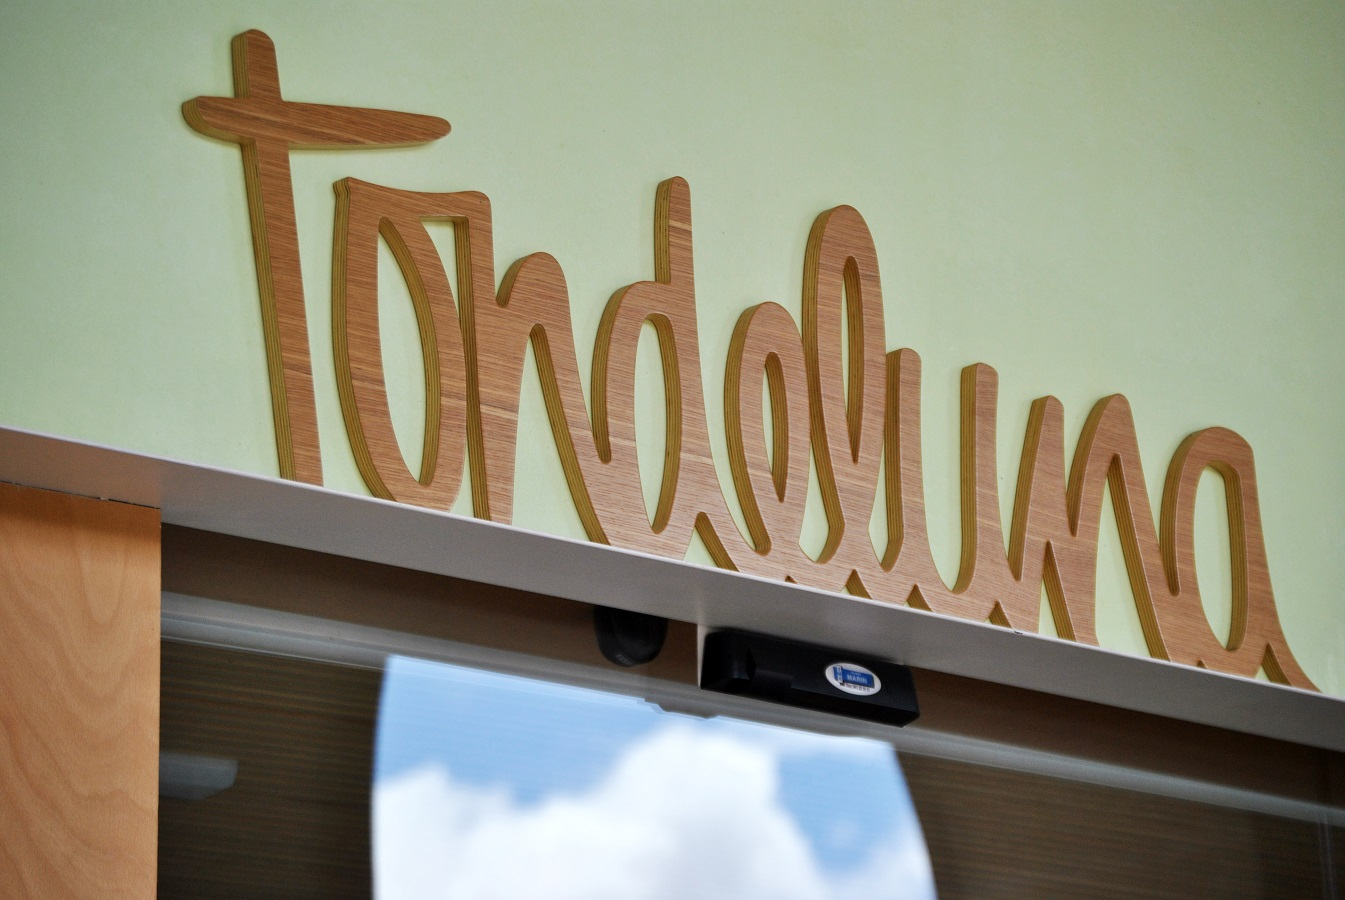 The Tondeluna restaurant, an example of sustainable architecture